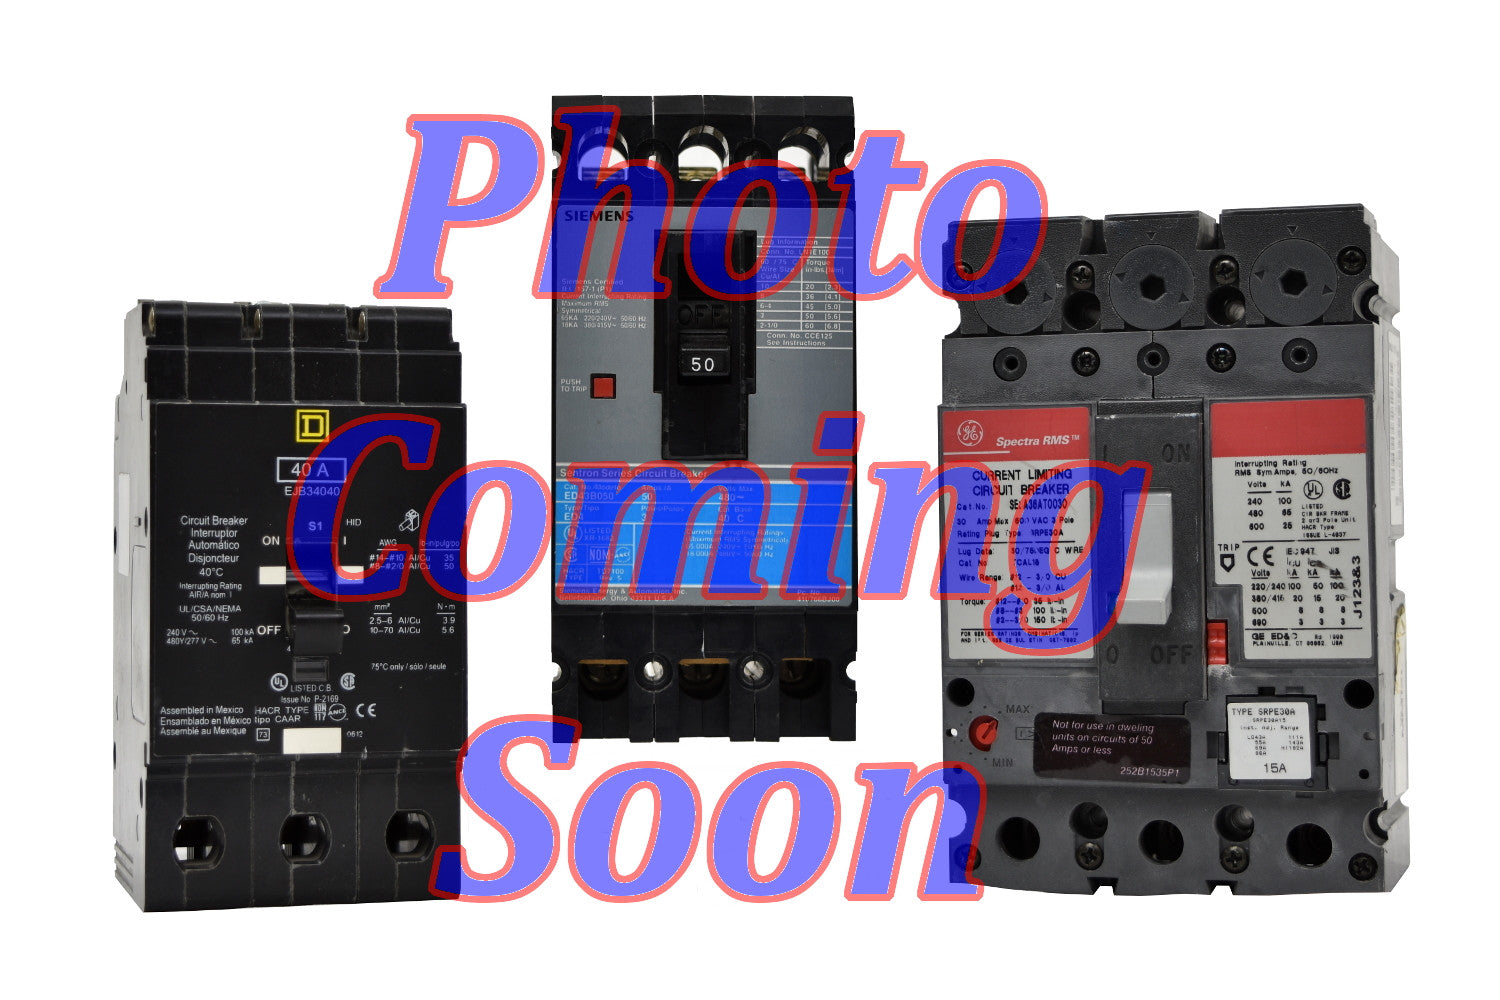 General Electric FCN326TE080R1 Circuit Breakers